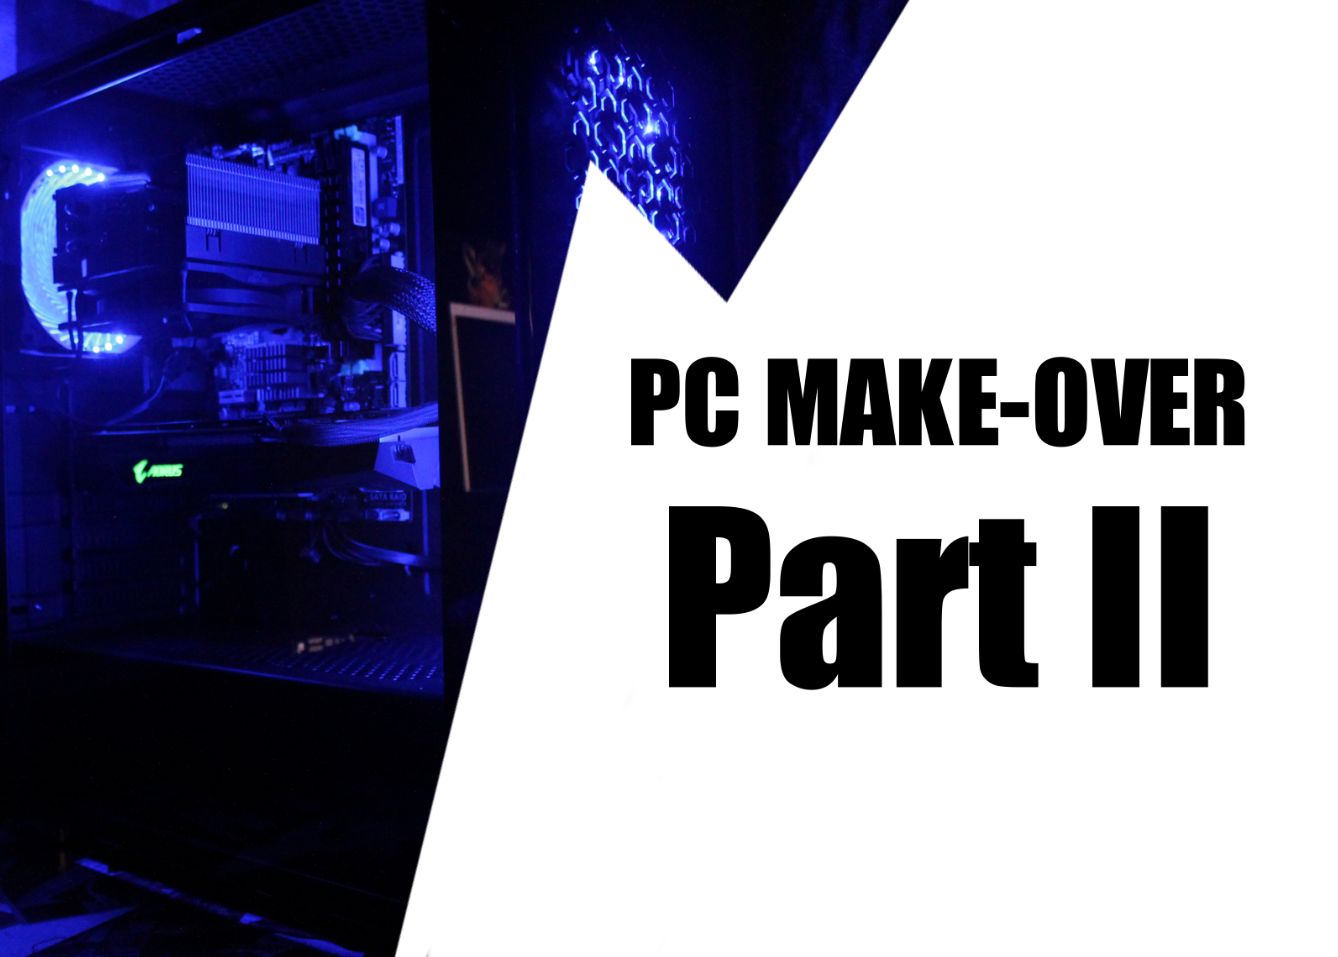 PC MAKEOVER PART II